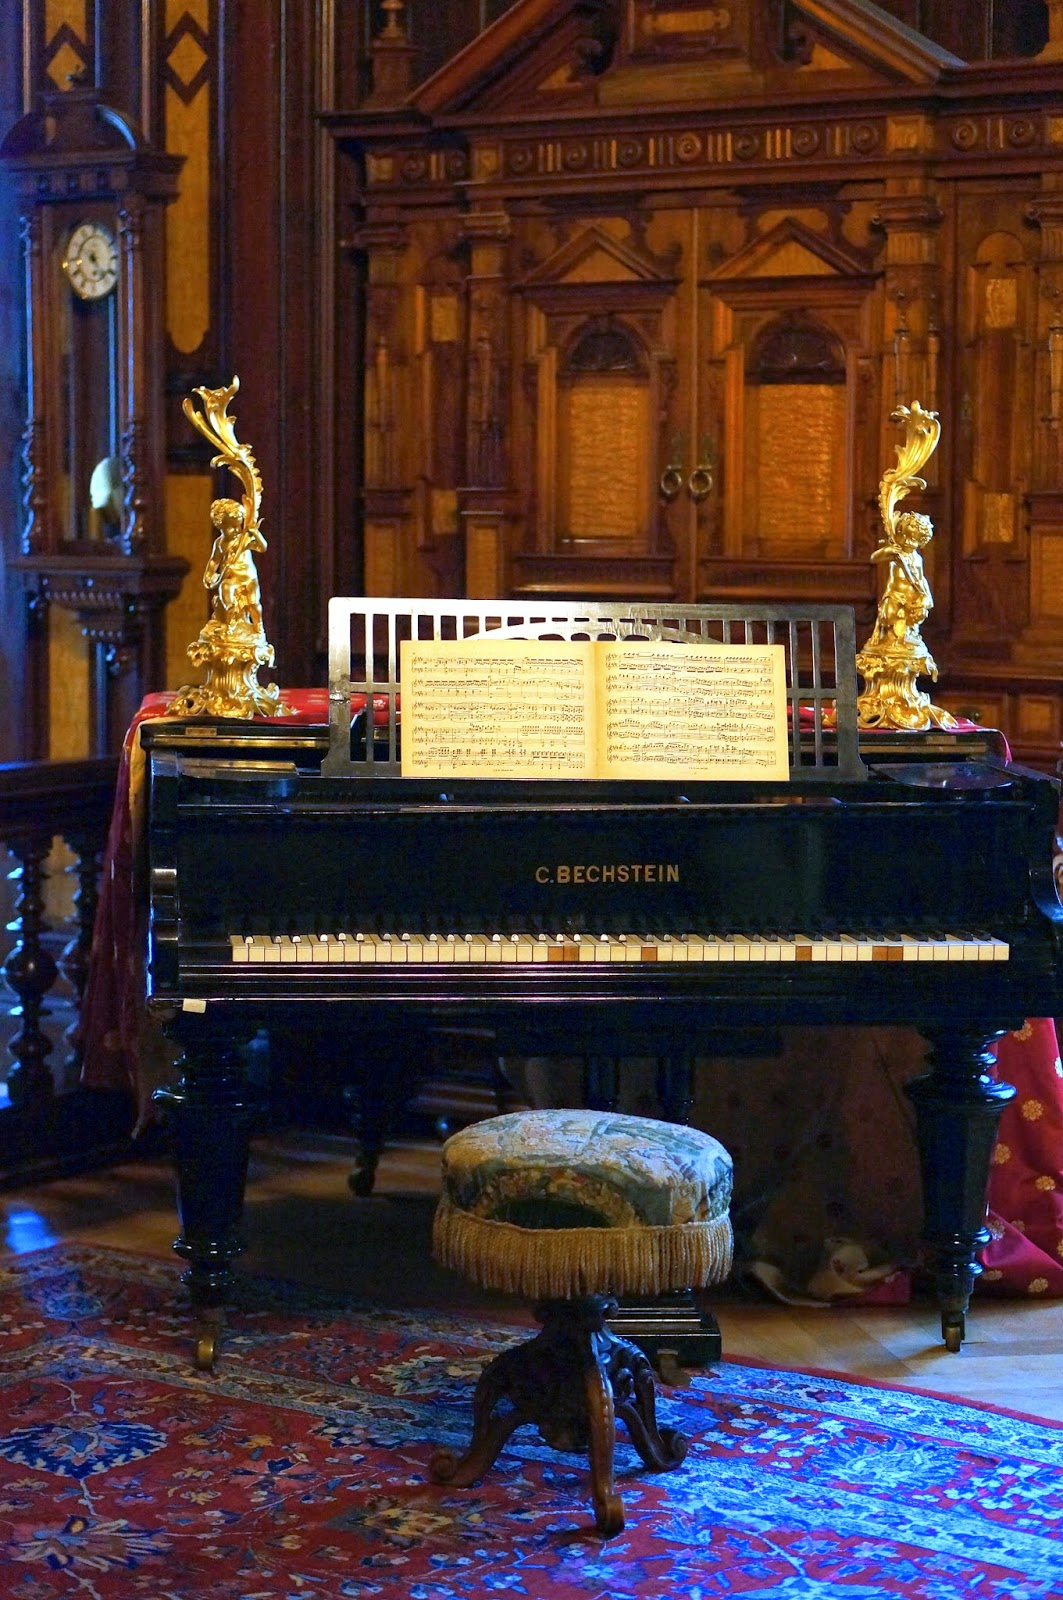 bucegi mountains,king carol I,peles castle,sinai a,piano